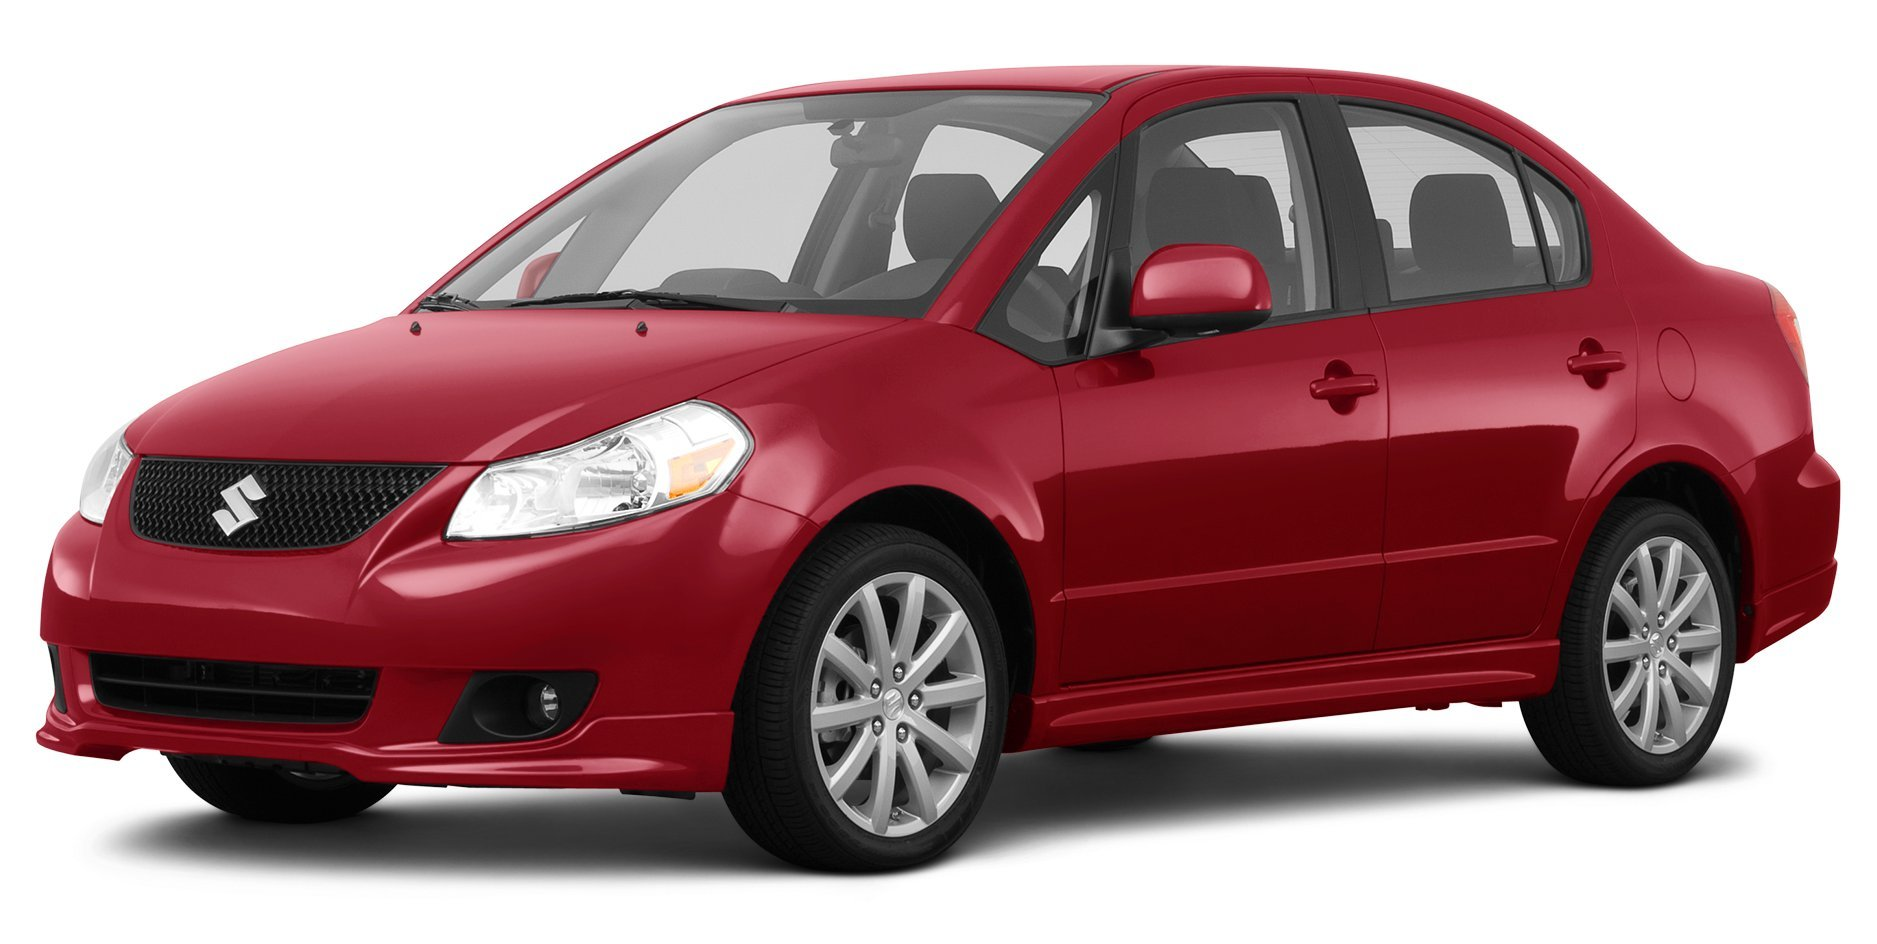 2012 Mitsubishi Lancer Reviews Images And Specs Vehicles Charging Circuit Diagram For The 1951 52 Cadillac All Models Suzuki Sx4 Le 4 Door Sedan Manual Transmission Front Wheel Drive